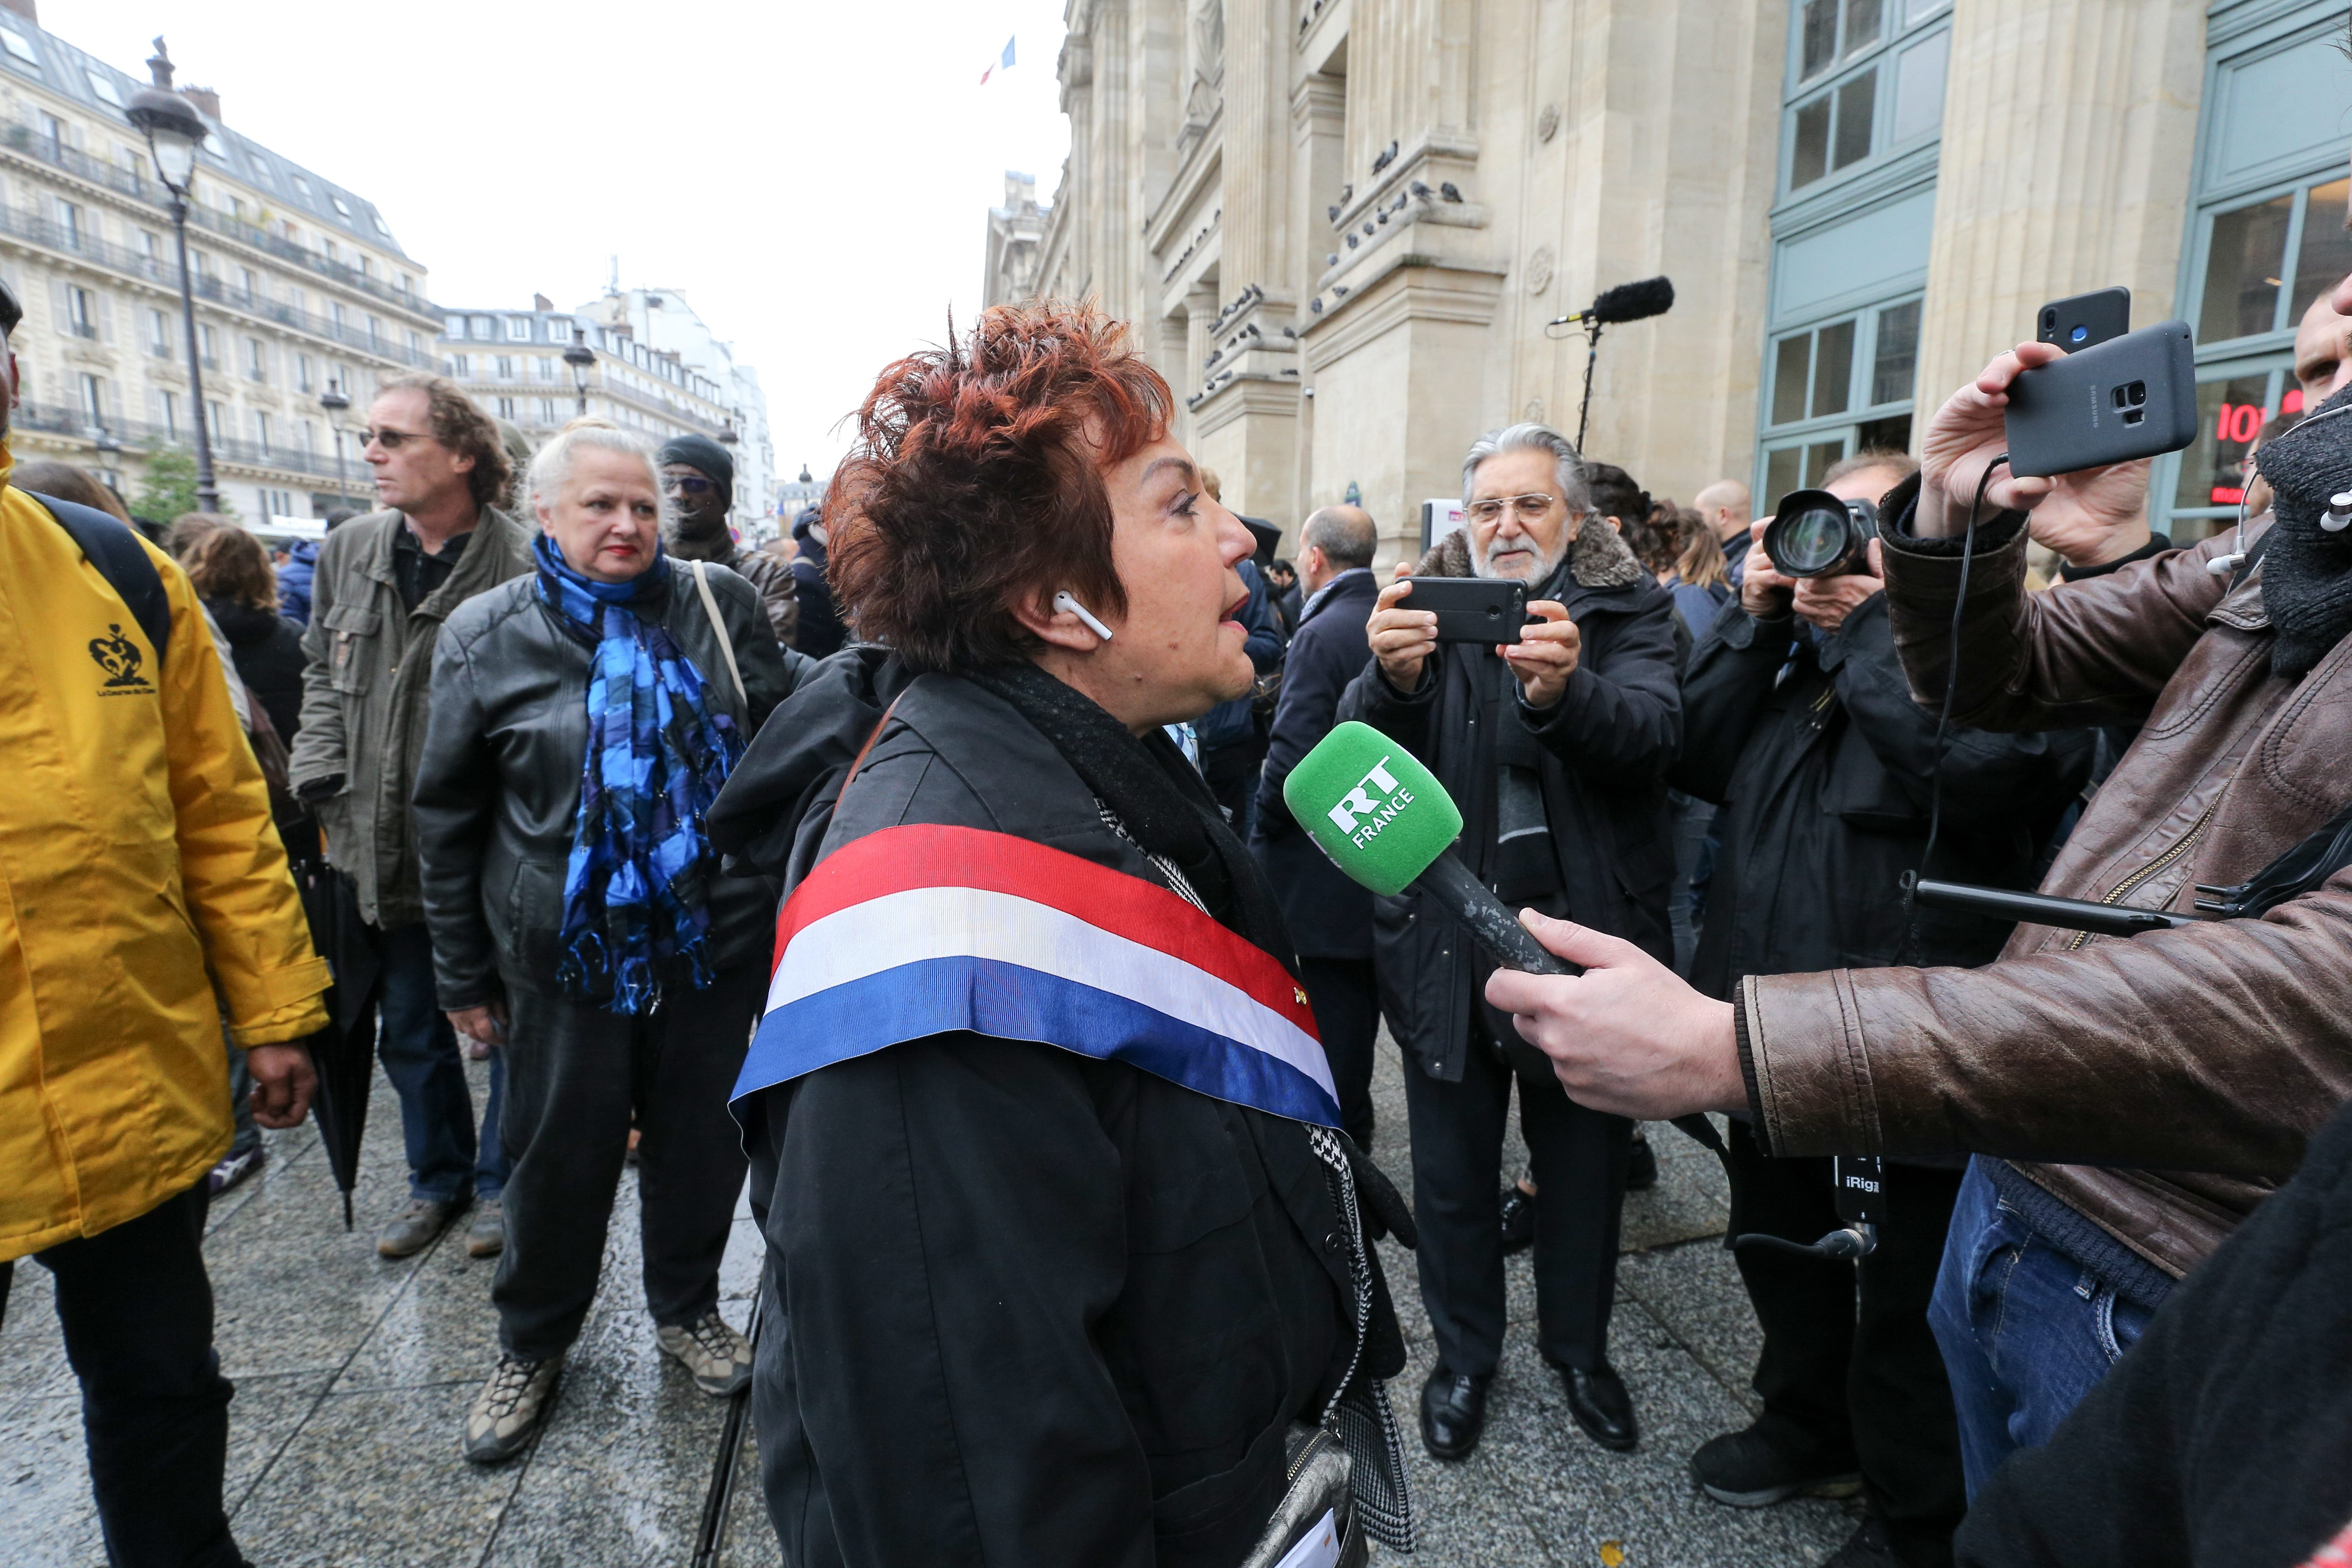 French-Turkish-Israeli hsitorian and ecologist politician Esther Benbassa (C) speaks with the press as she takes part in a march near the Gare du Nord, in Paris, on November 10, 2019, to protest against Islamophobia, at the call of several anti-racist acti